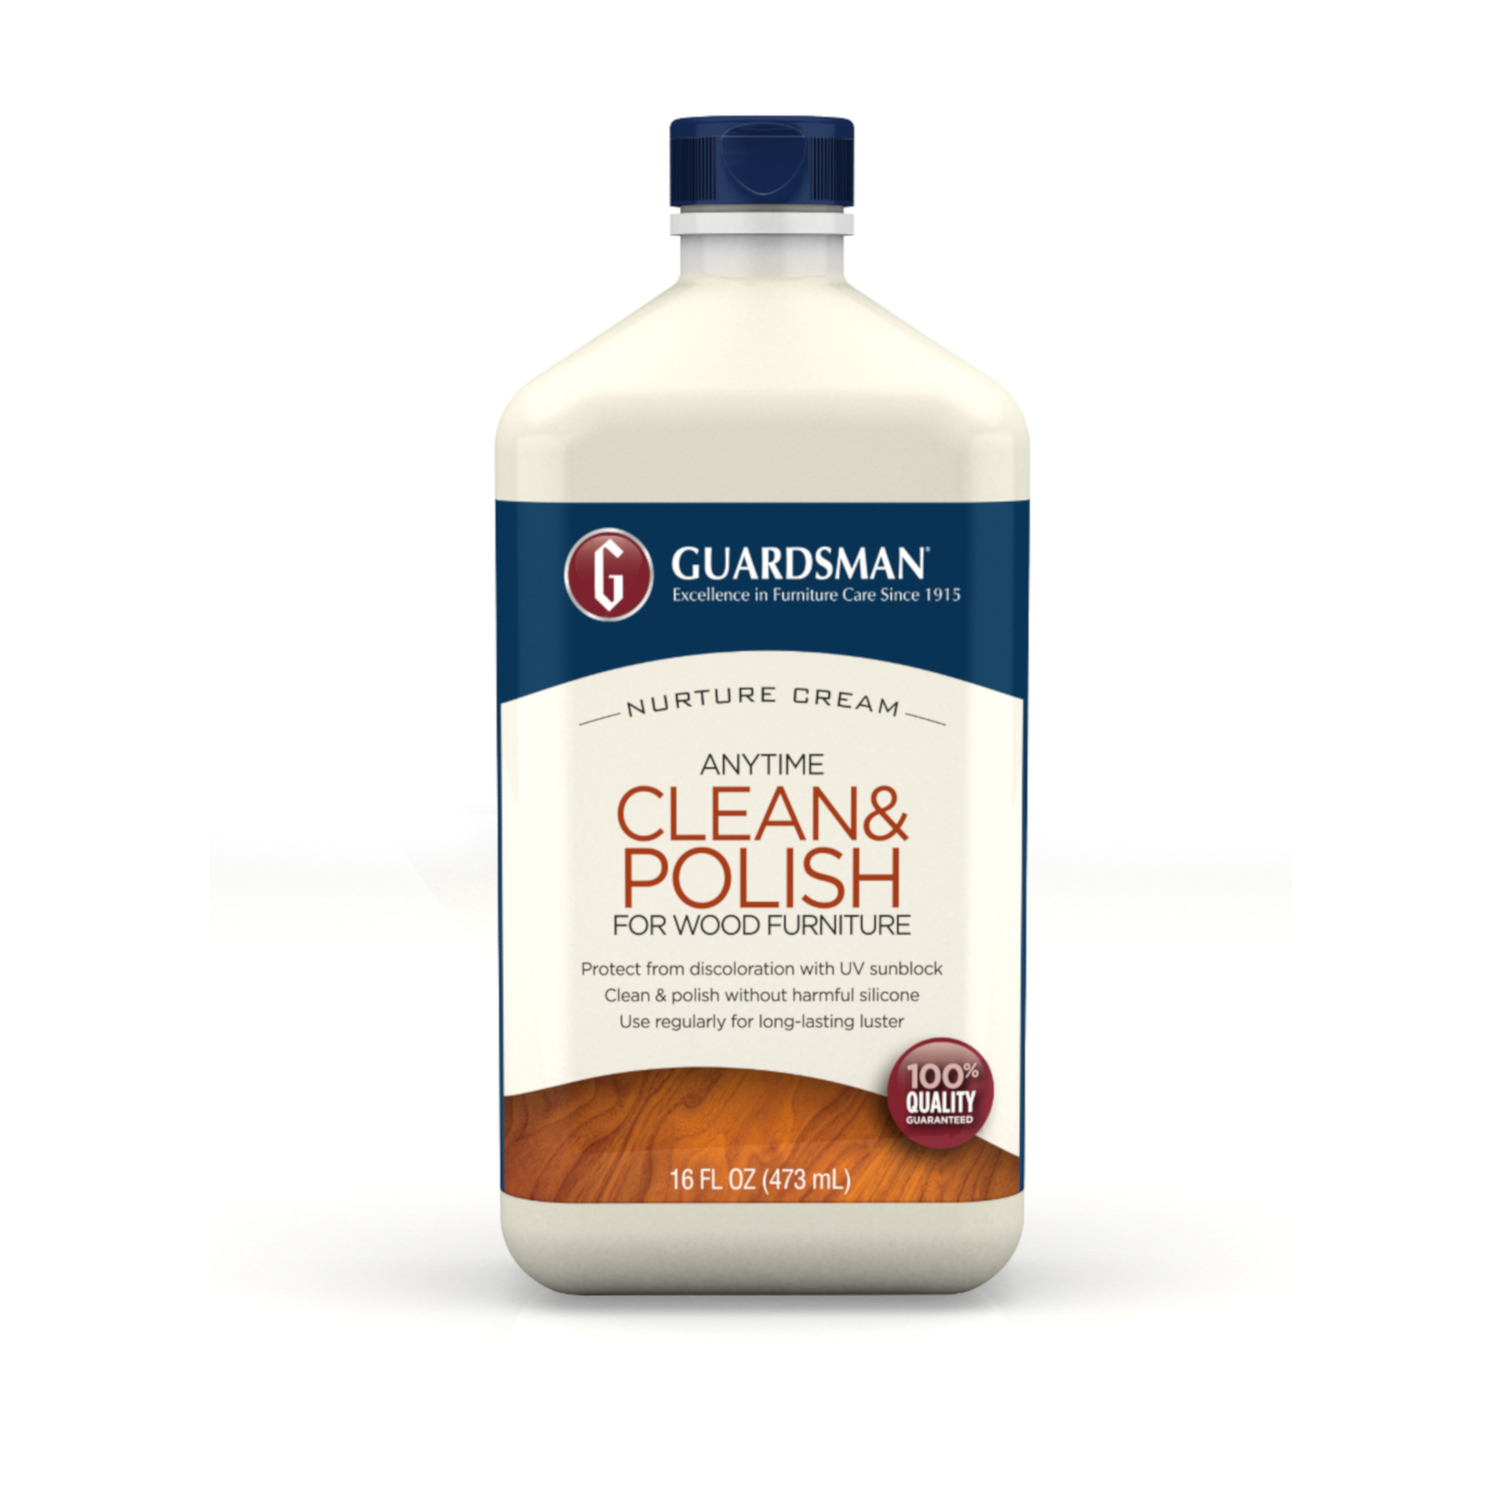 Guardsman Anytime Clean U0026 Polish Woodland Fresh Scent Furniture Cream 16 Oz.